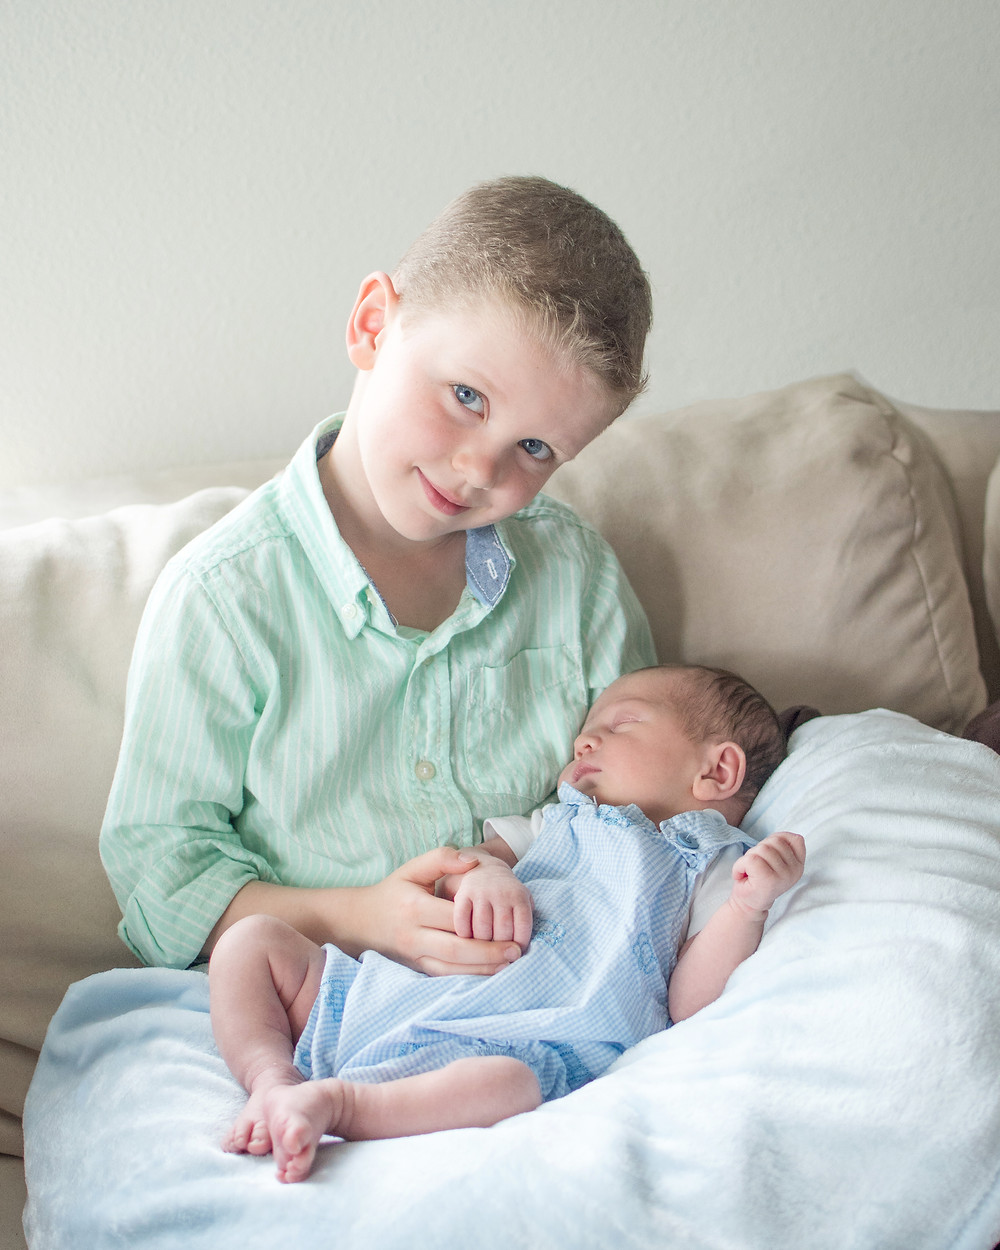 brother and newborn